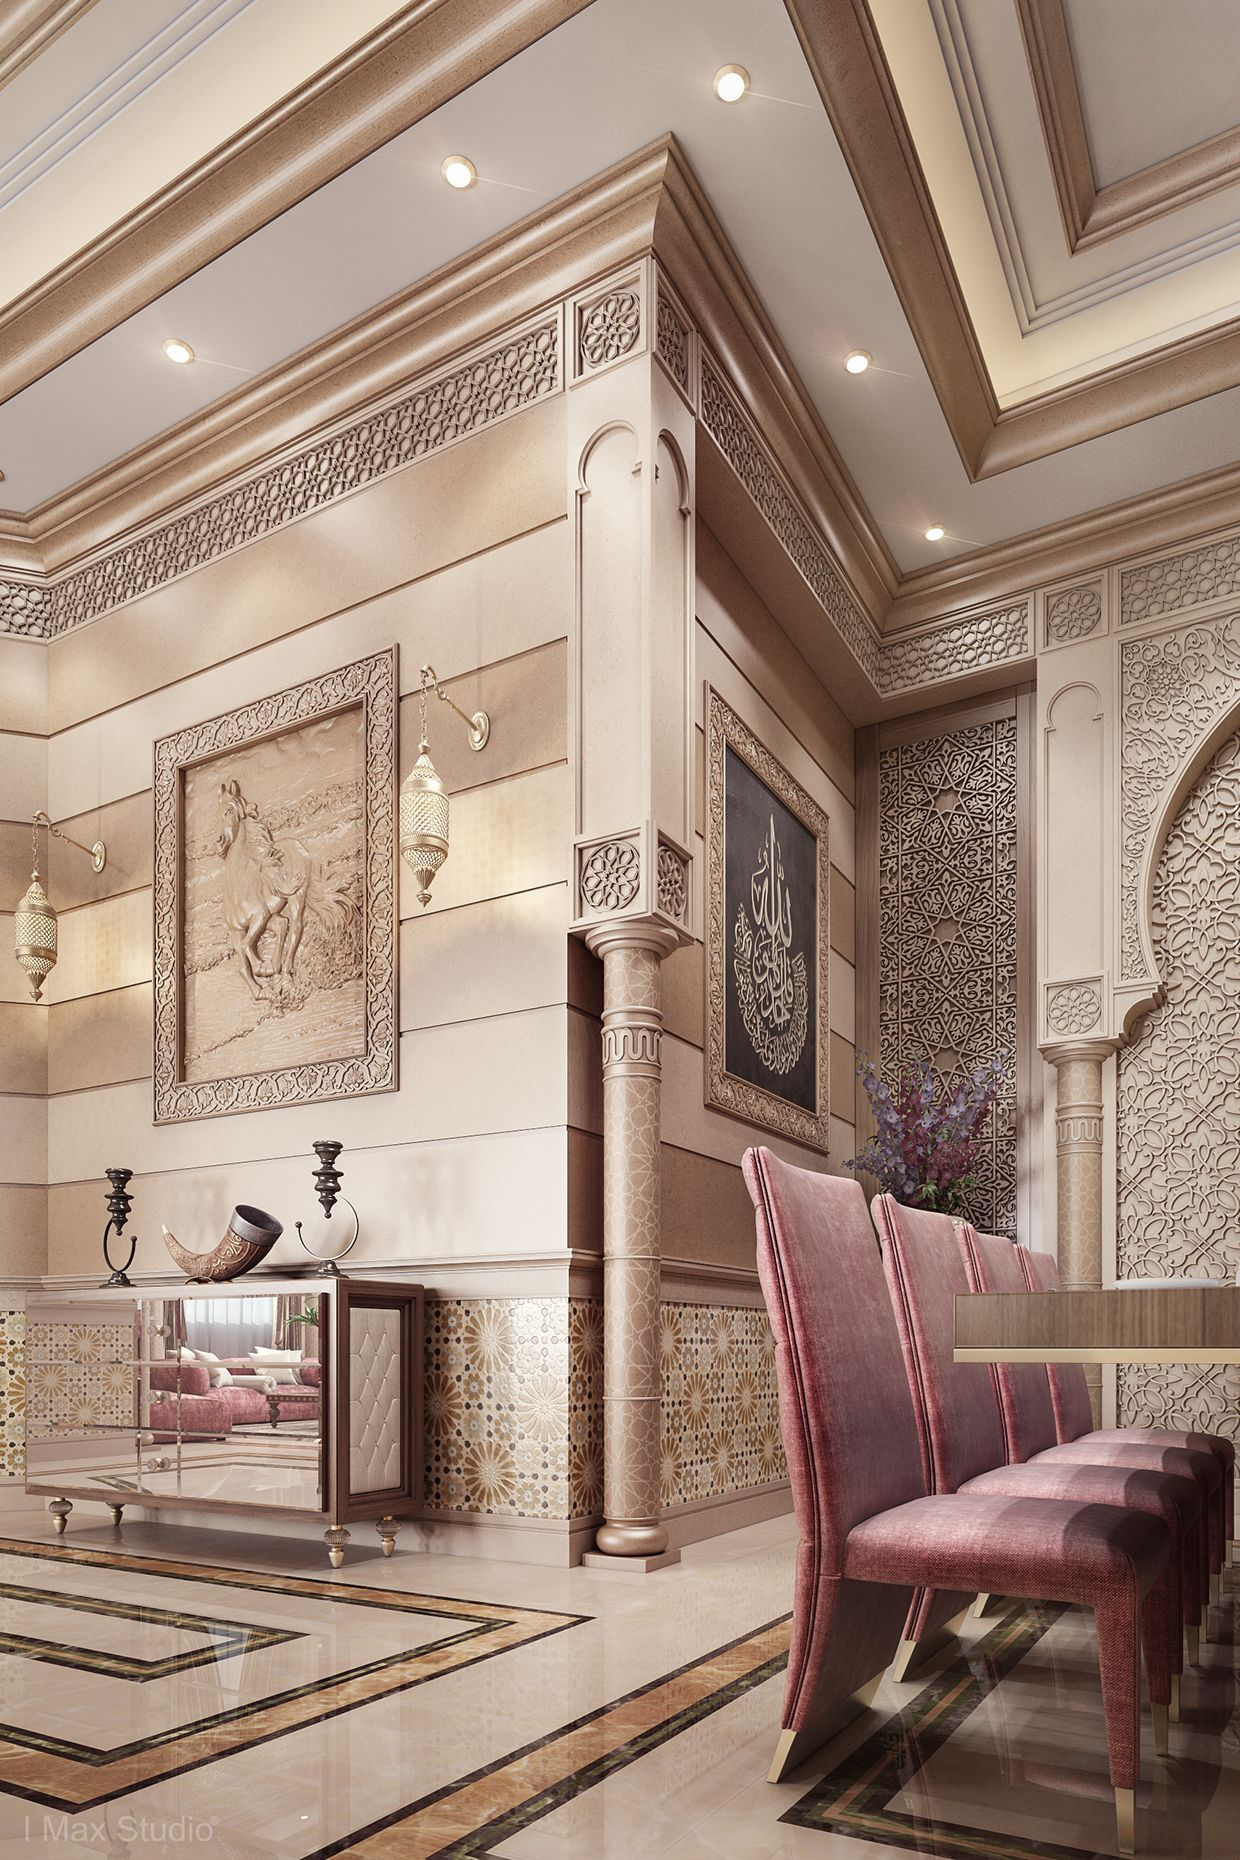 Classic luxury modern majlis design in saudi arabia - Find This Pin And More On Majlis By Ahmadroydal